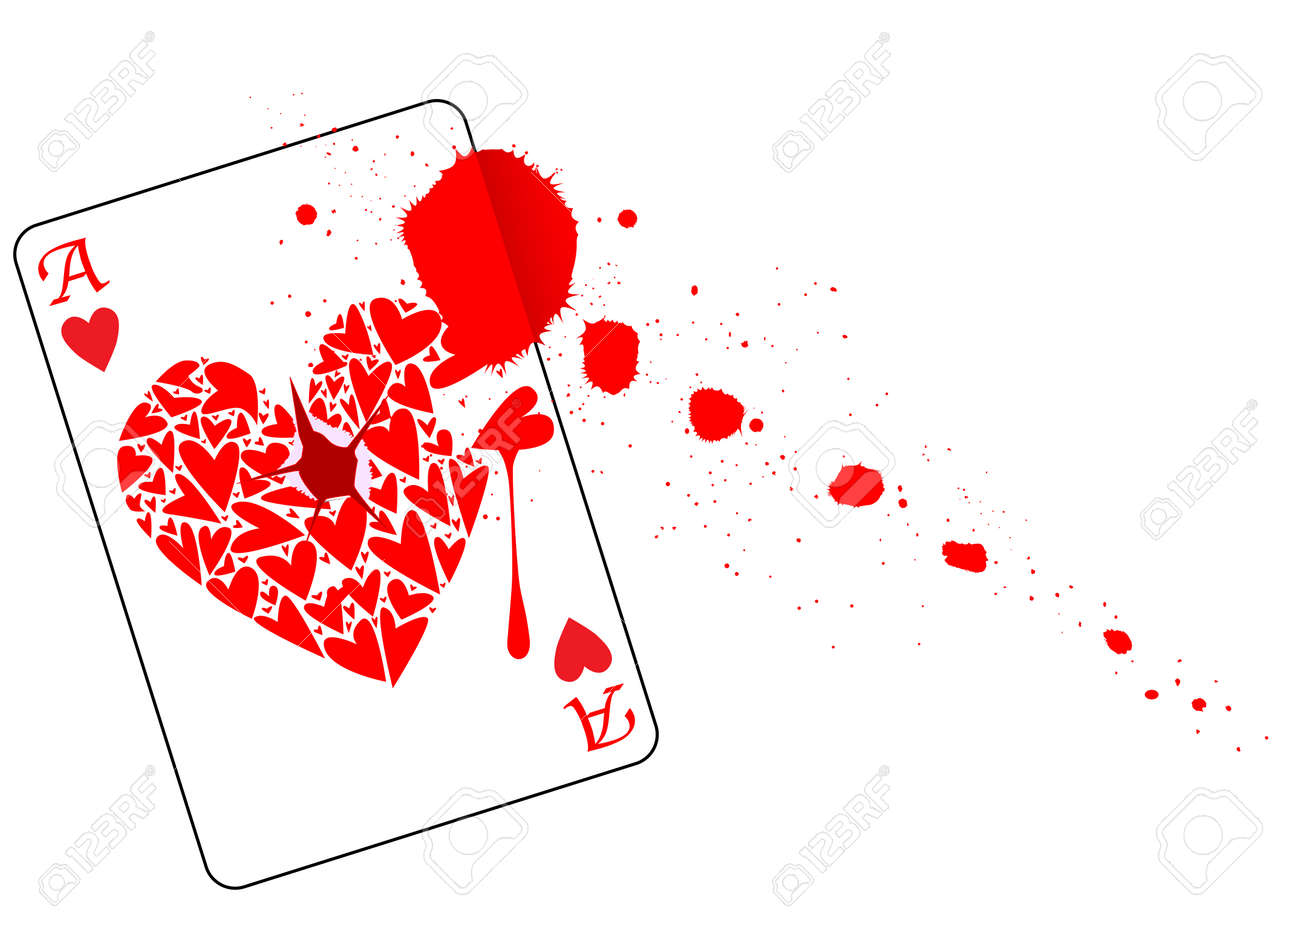 The Ace Of Hearts With A Bullet Hole Through The Centre And Blood